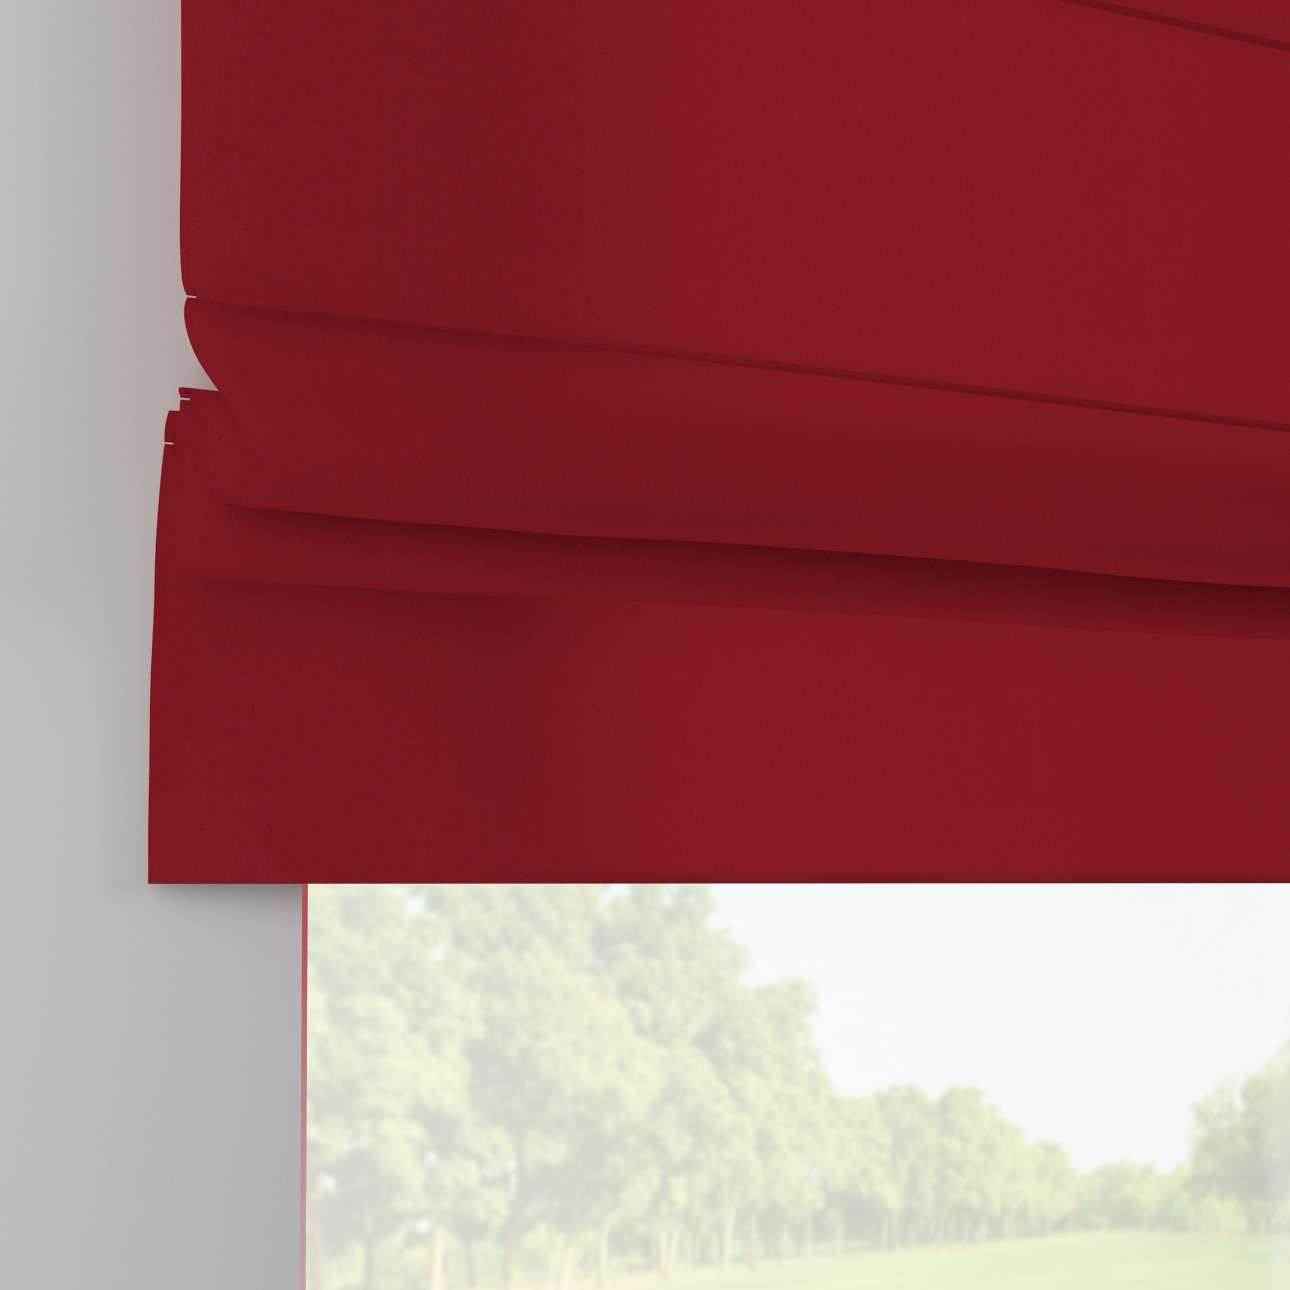 Padva roman blind  130 x 170 cm (51x 67 inch) in collection Chenille, fabric: 702-24